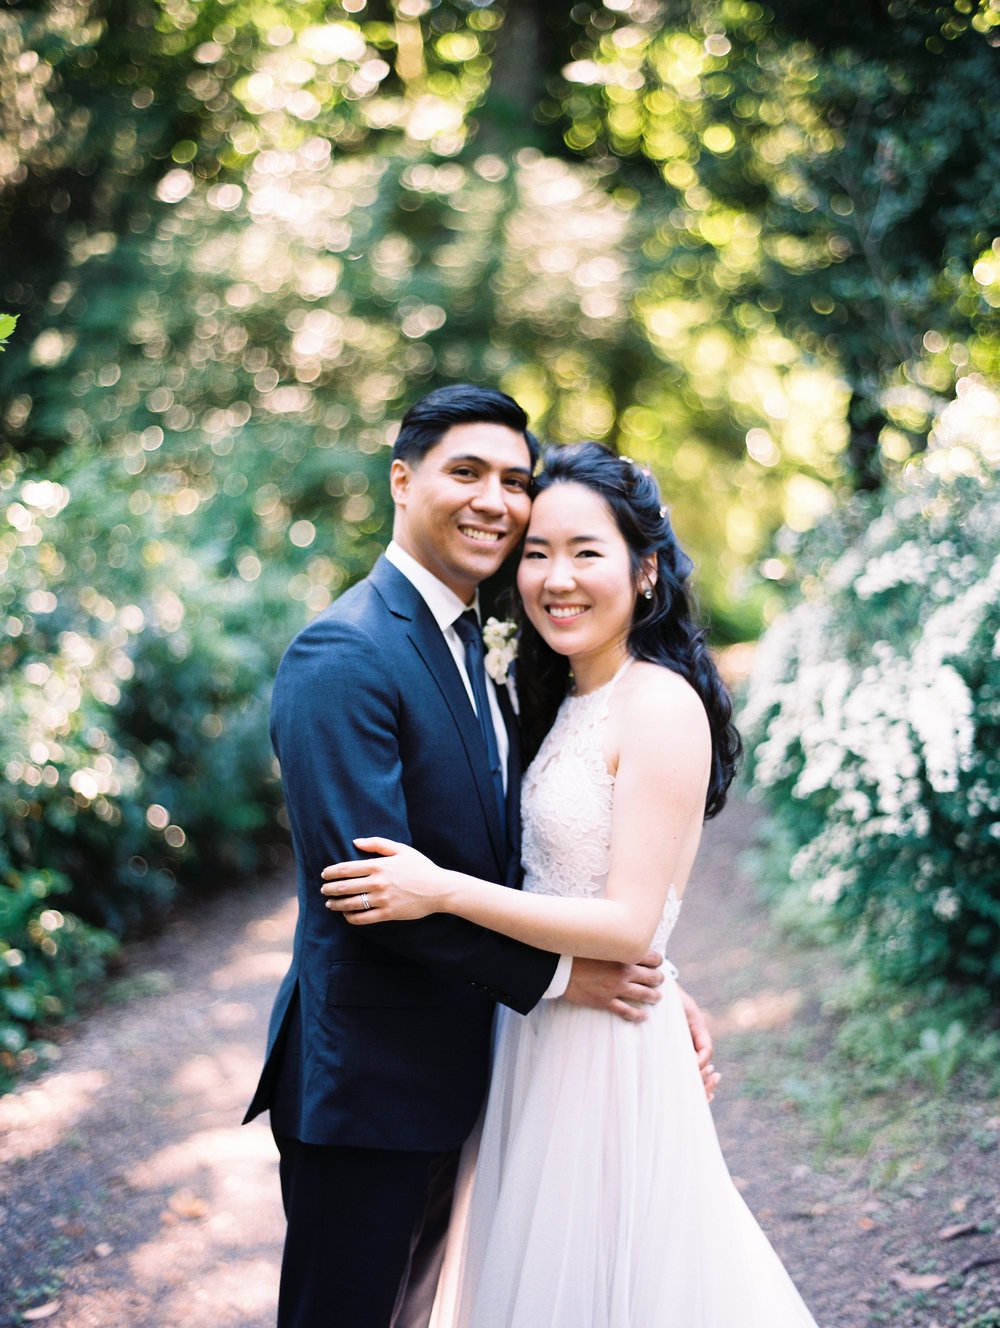 Organic and timeless Wedding Film Photography in Portland, Oregon, Cannon Beach and PNW area. West Coast Fine Art Film Wedding Photographers.